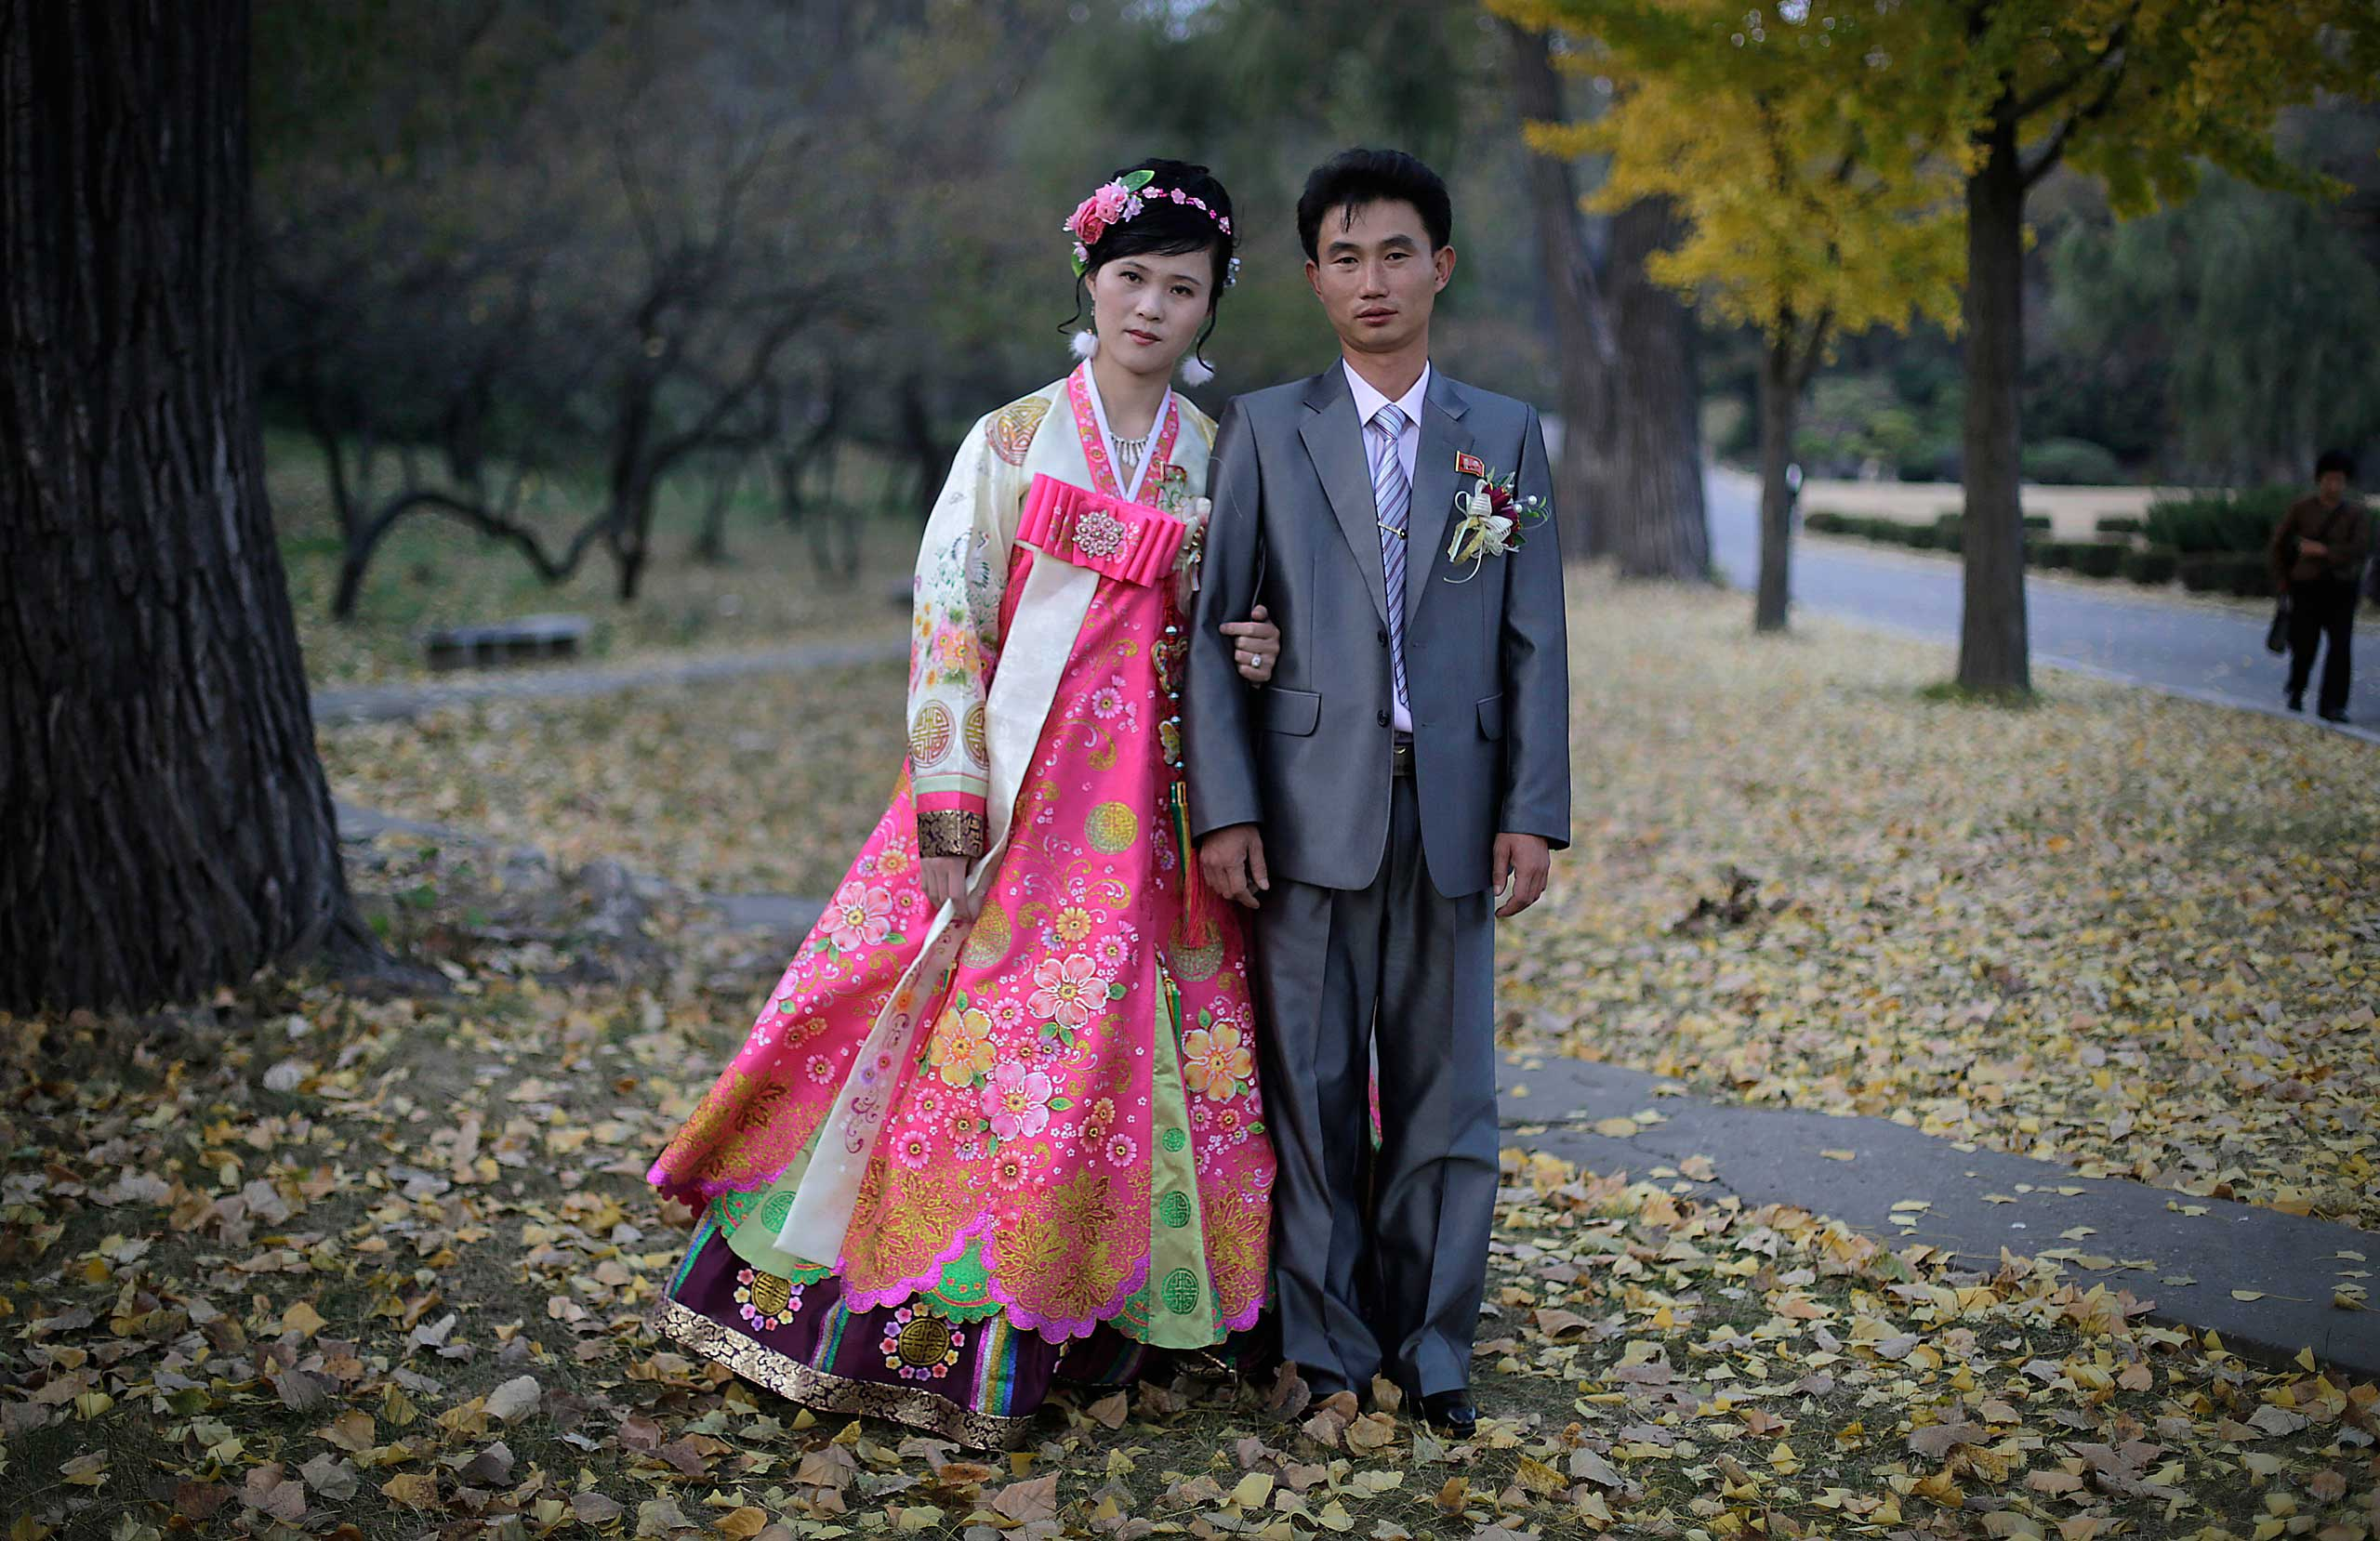 Oct. 25, 2014. A North Korean bride and groom pose for a photograph at the Moranbong Hill in Pyongyang, where they went to take wedding pictures.